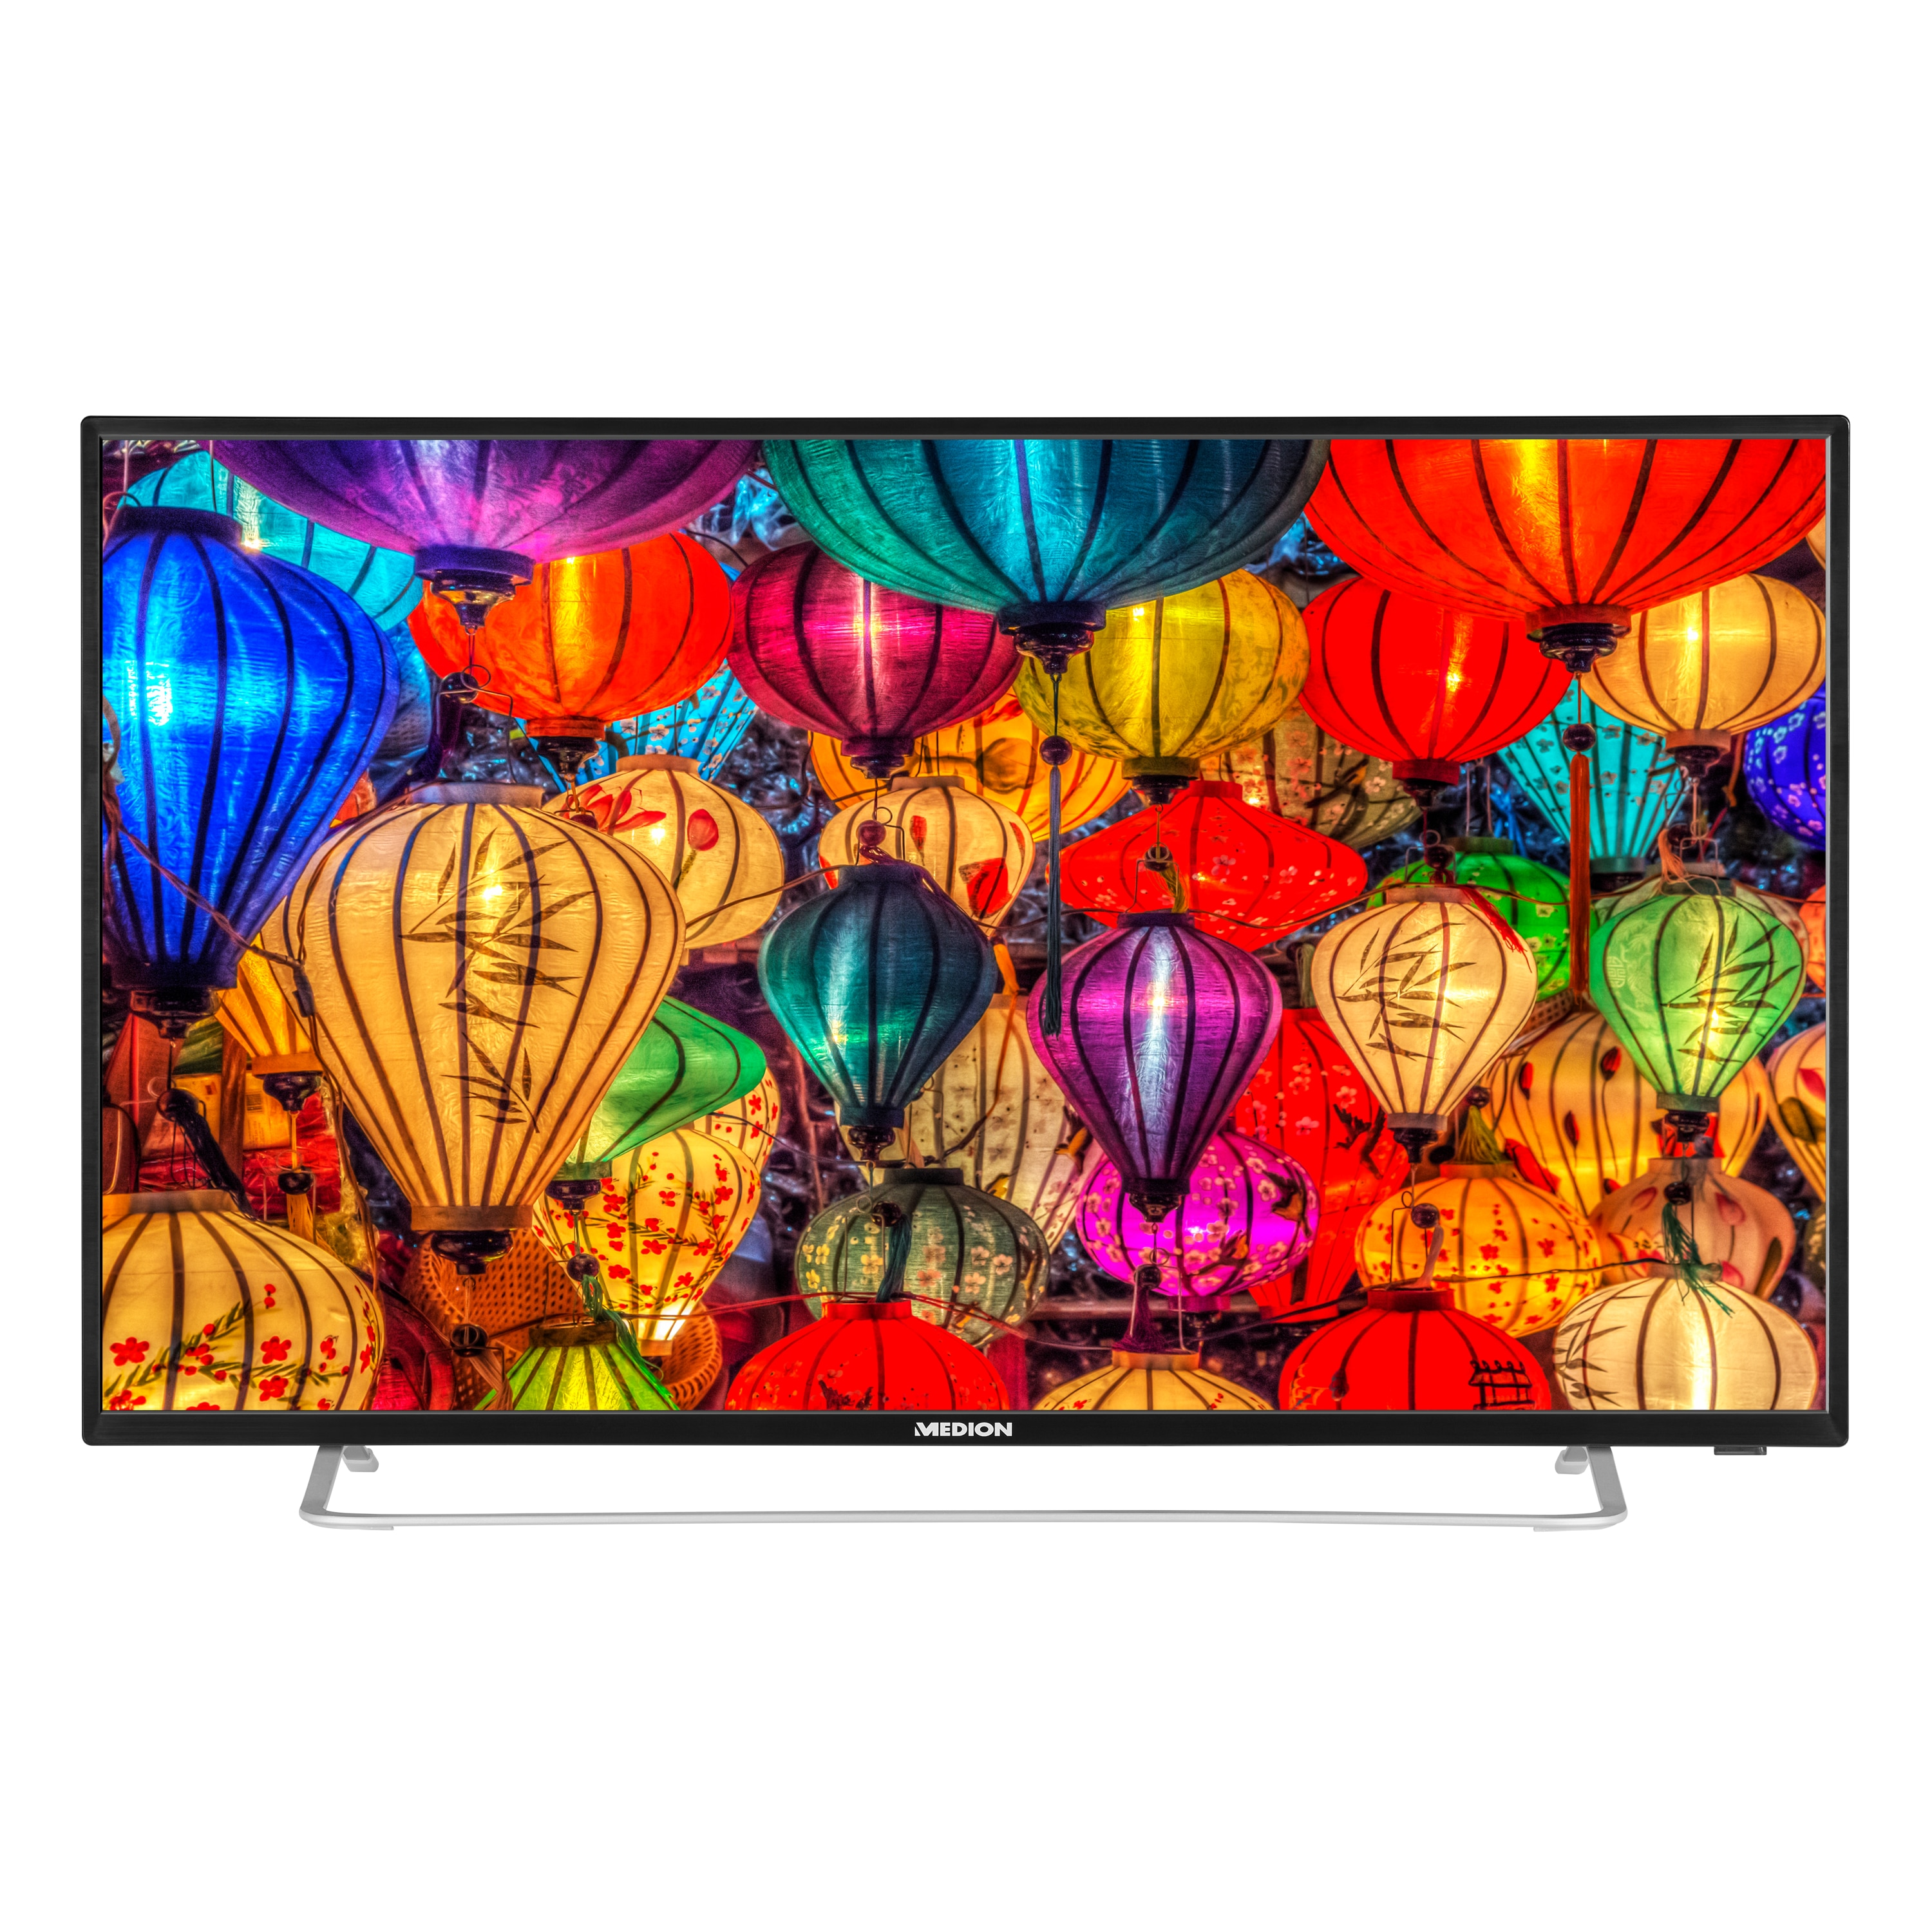 MEDION® LIFE® S14304 TV, 108 cm (43), inkl. Wandhalterung, Full HD, HD Triple Tuner, integrierter Mediaplayer, CI+